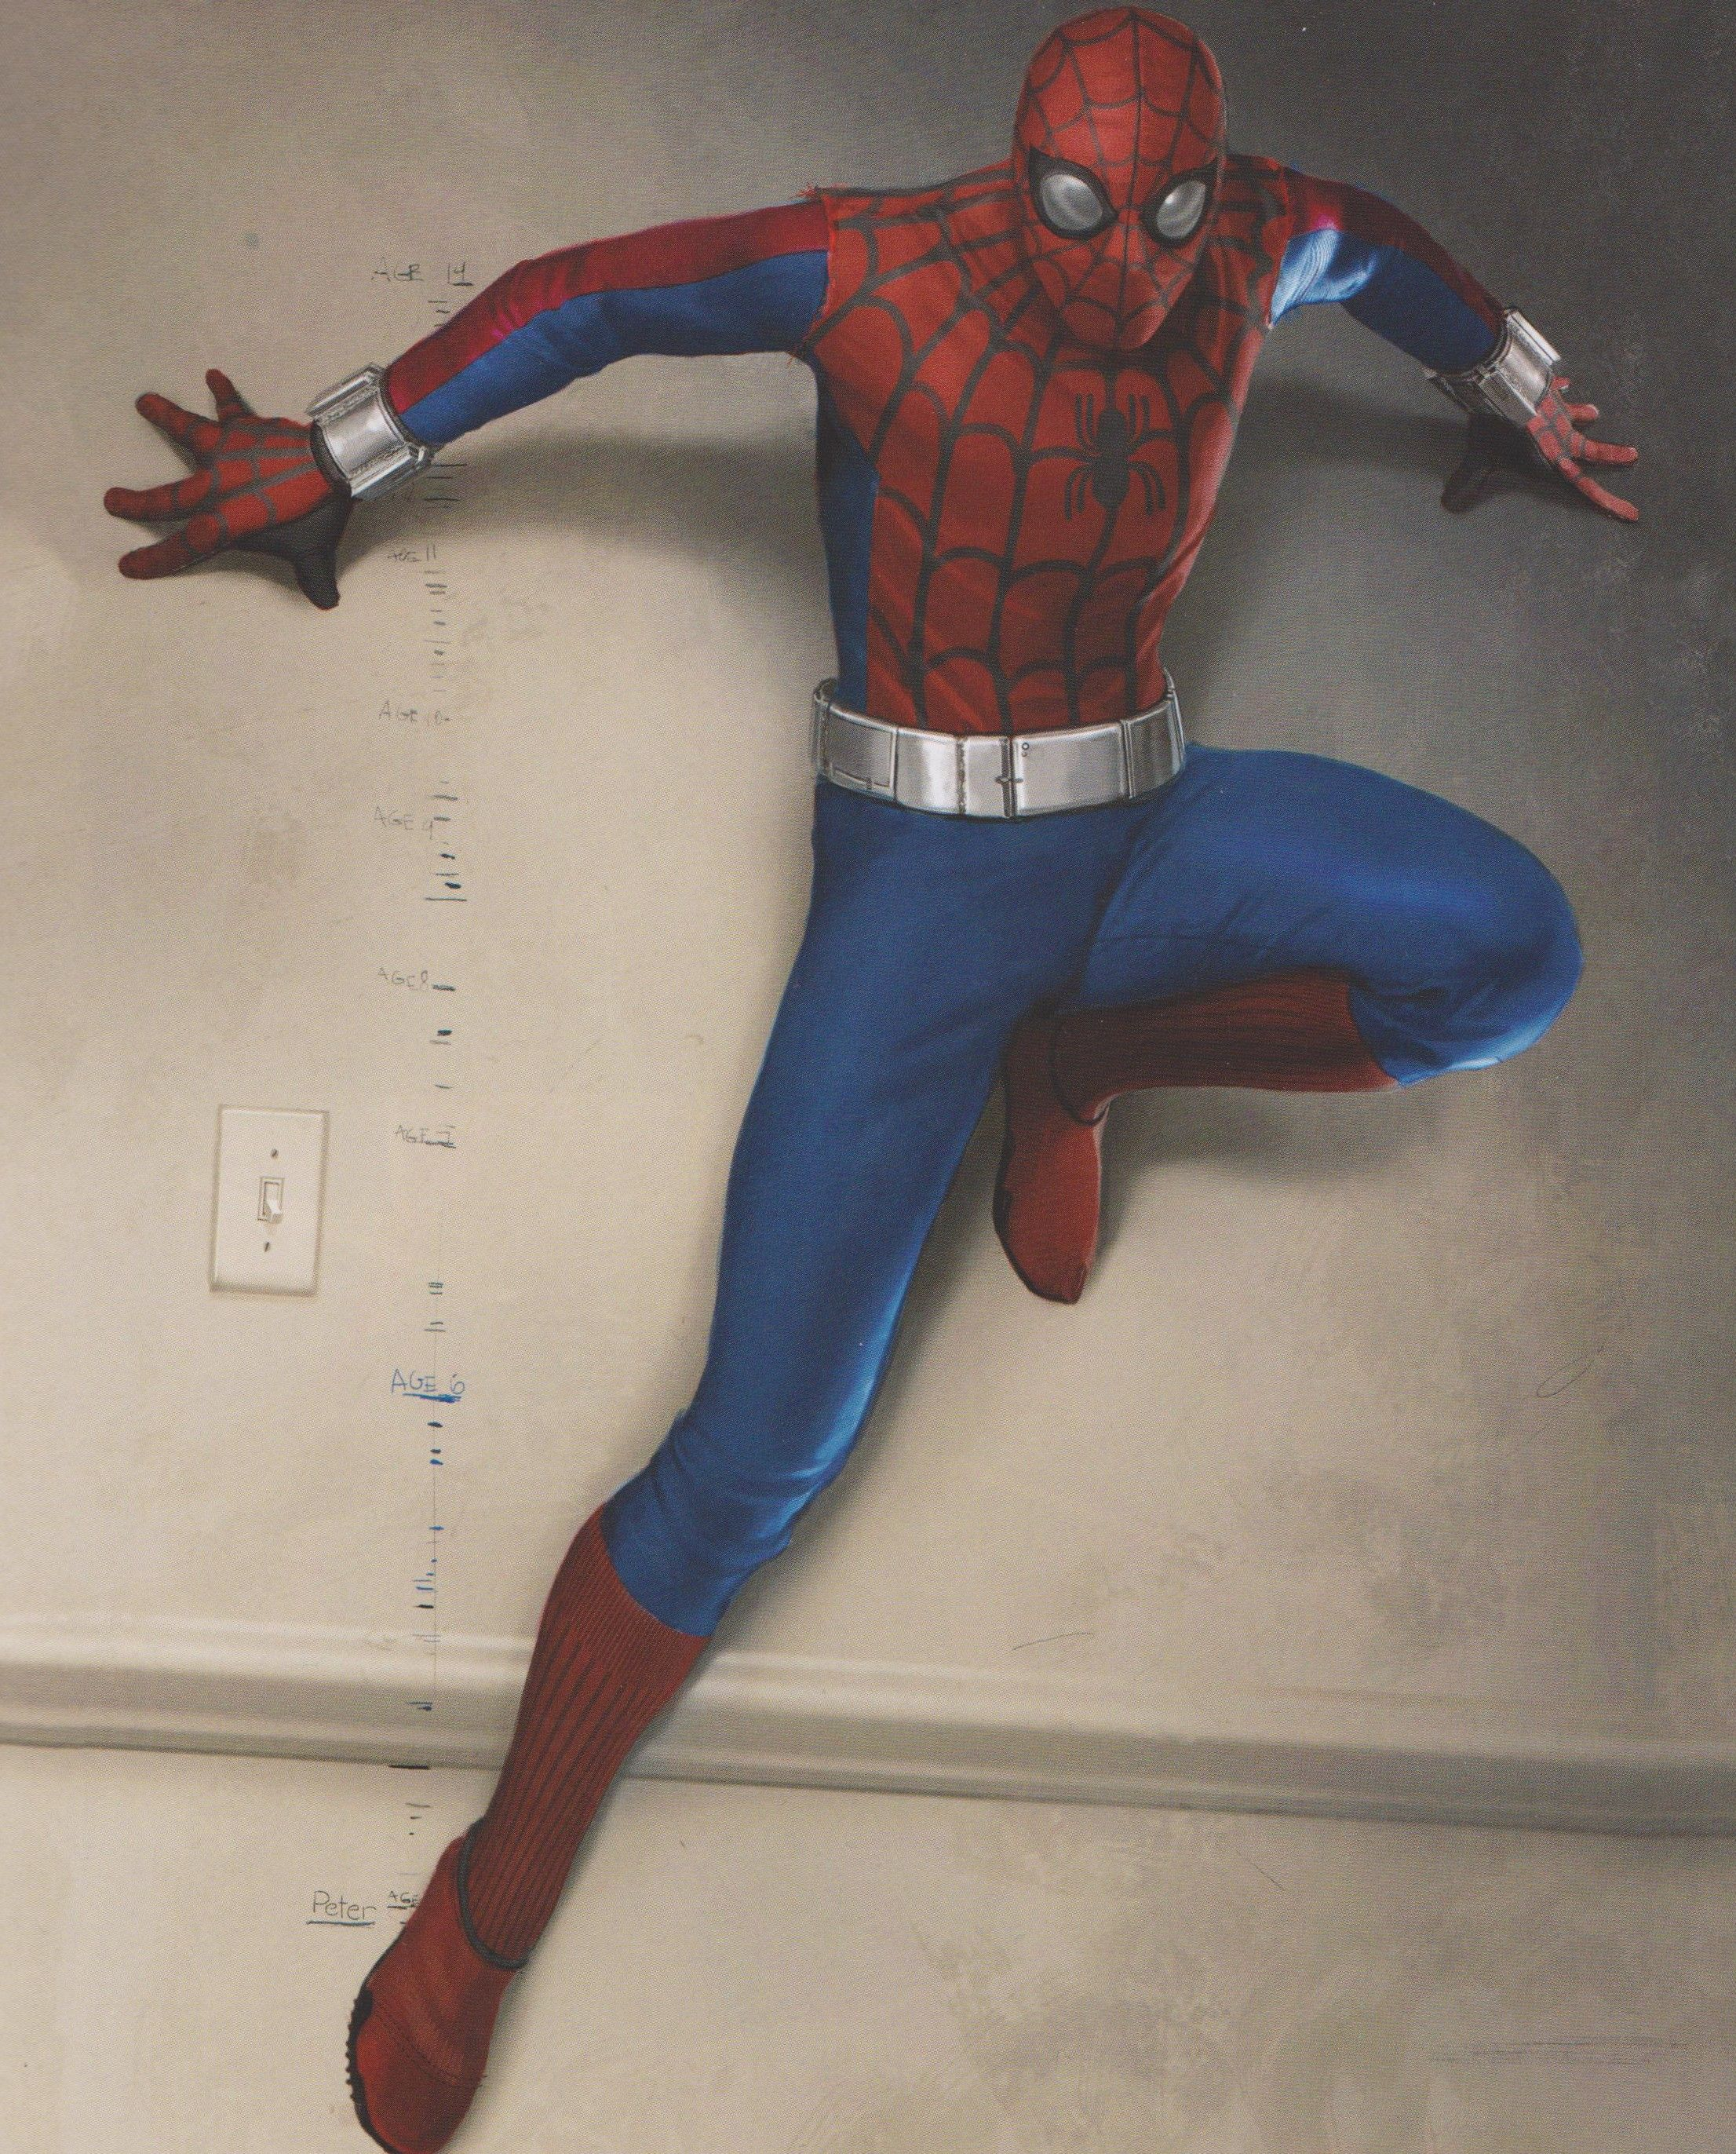 Spider Man Homecoming Homemade Suit Concept Art Takes Unexpected Inspiration From The 70s Tv Series Spiderman Spiderman Homecoming Concept Art Spider